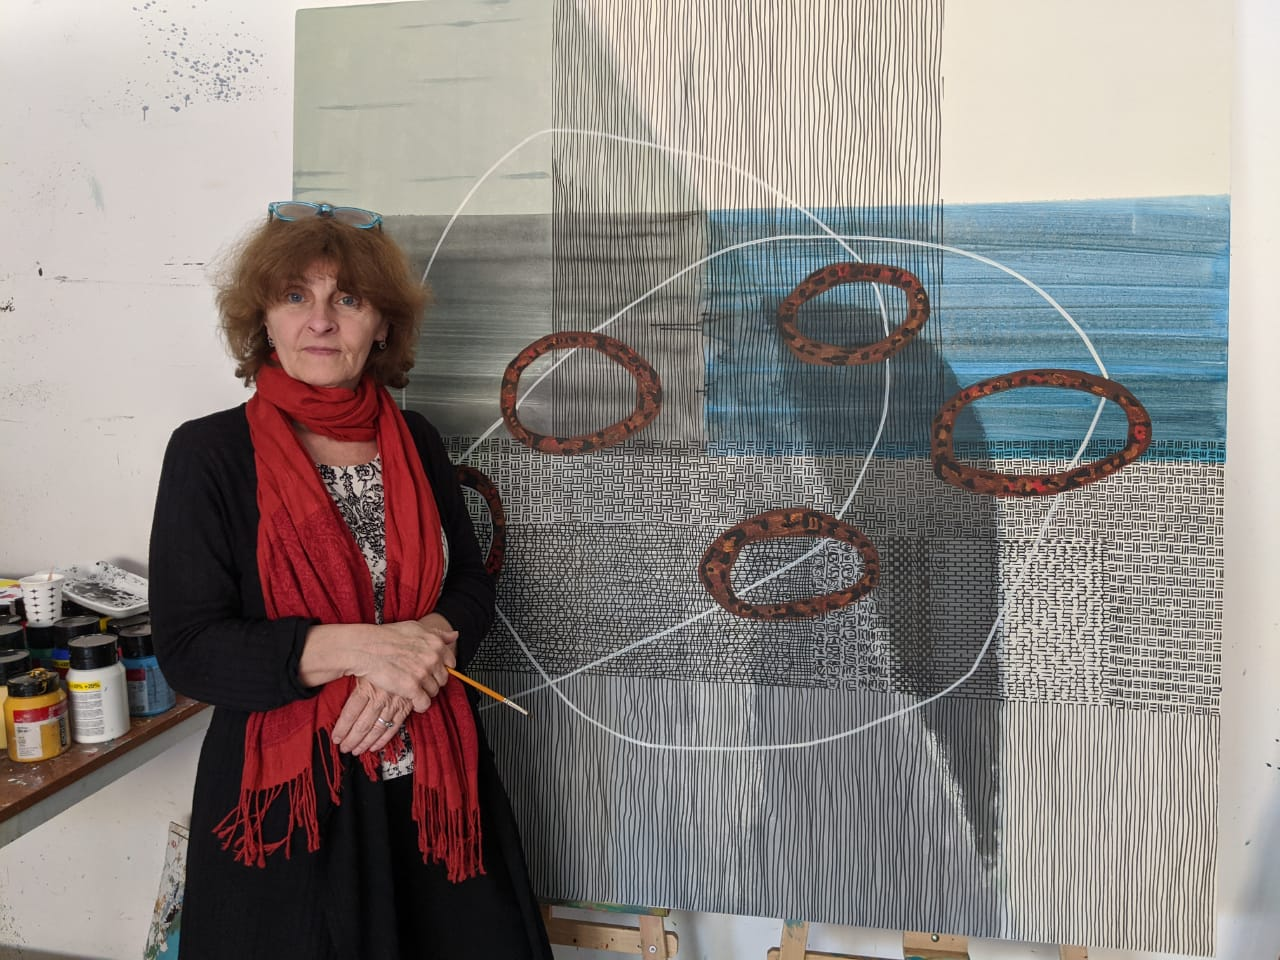 Artist Irina Lavrinenko reflected Cyprus-specific figures and motifs for the Cyprus Museum of Modern Arts through canvas paintings that she painted during the COVID-19 quarantine days